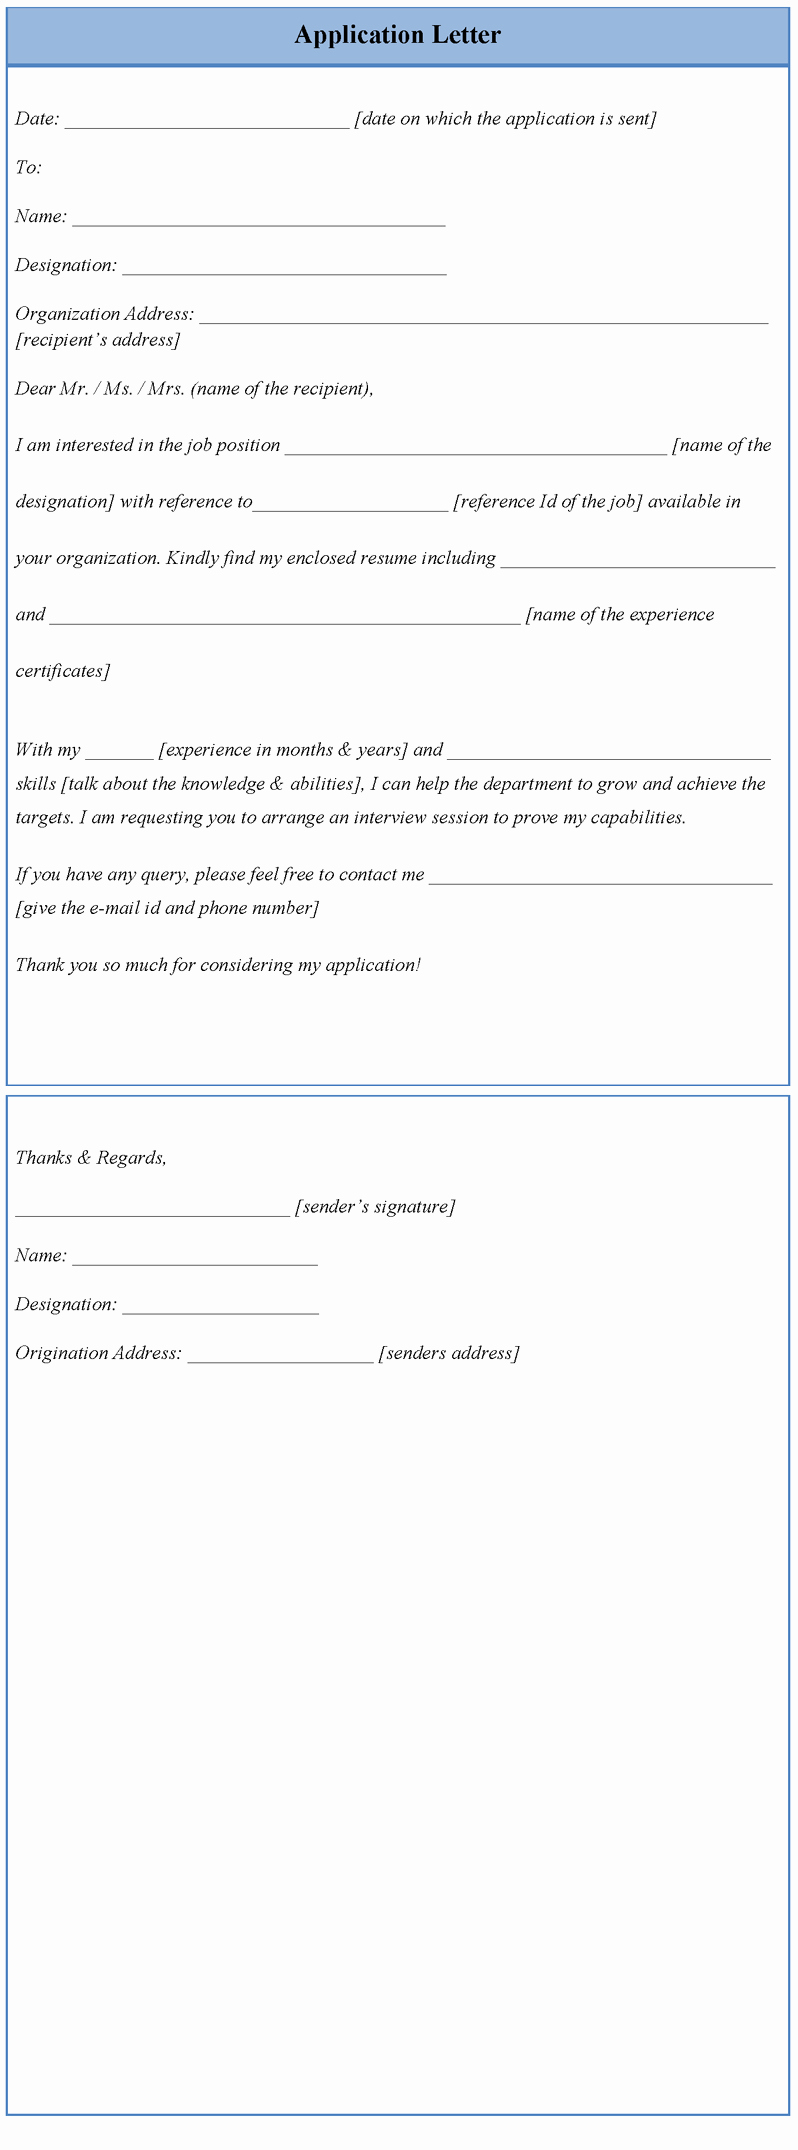 Sample Application Letter Template